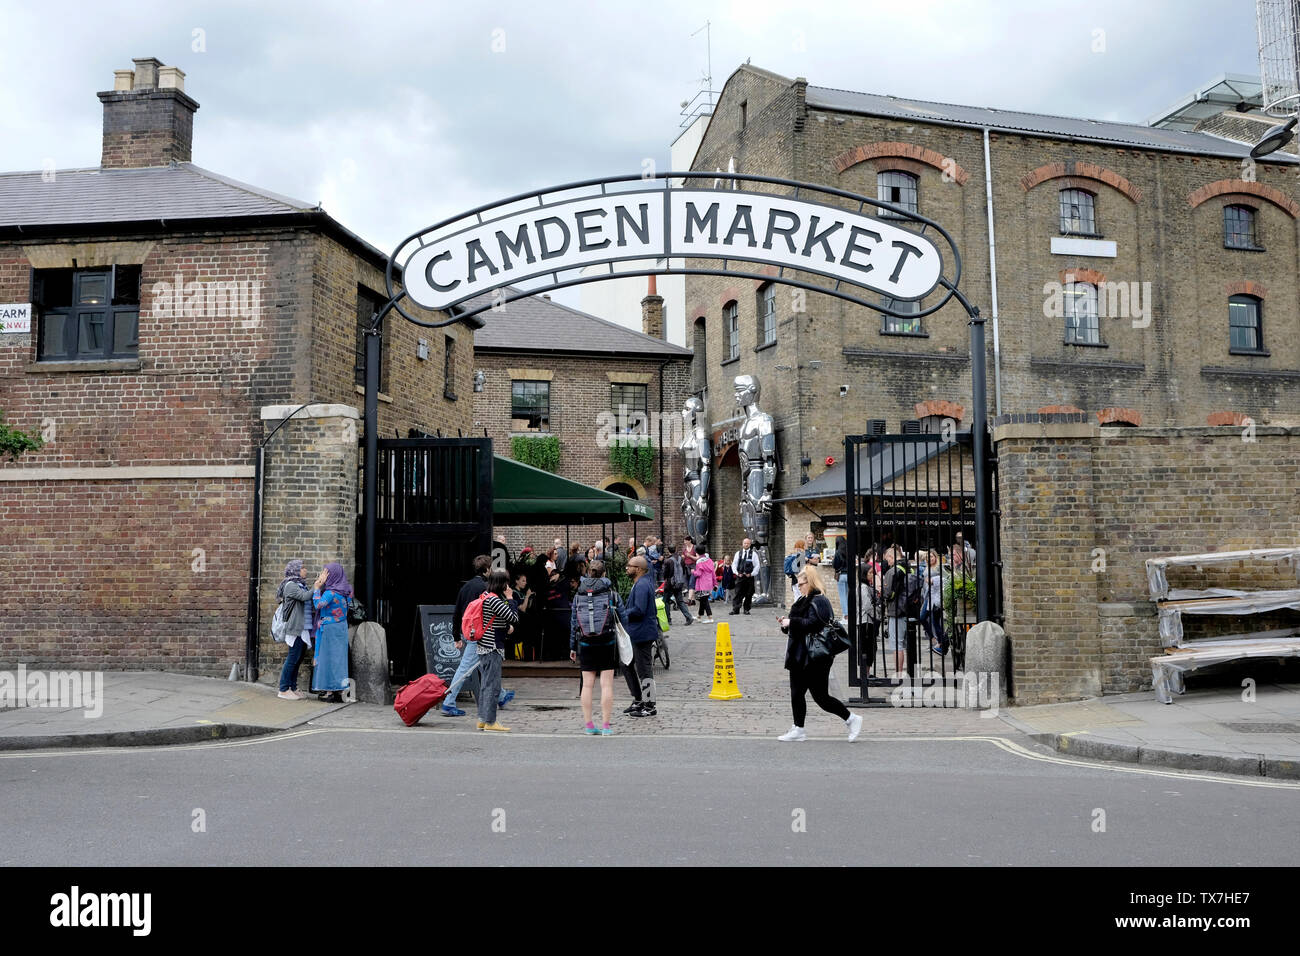 A general view of Stables market, Camden Town, London - Stock Image